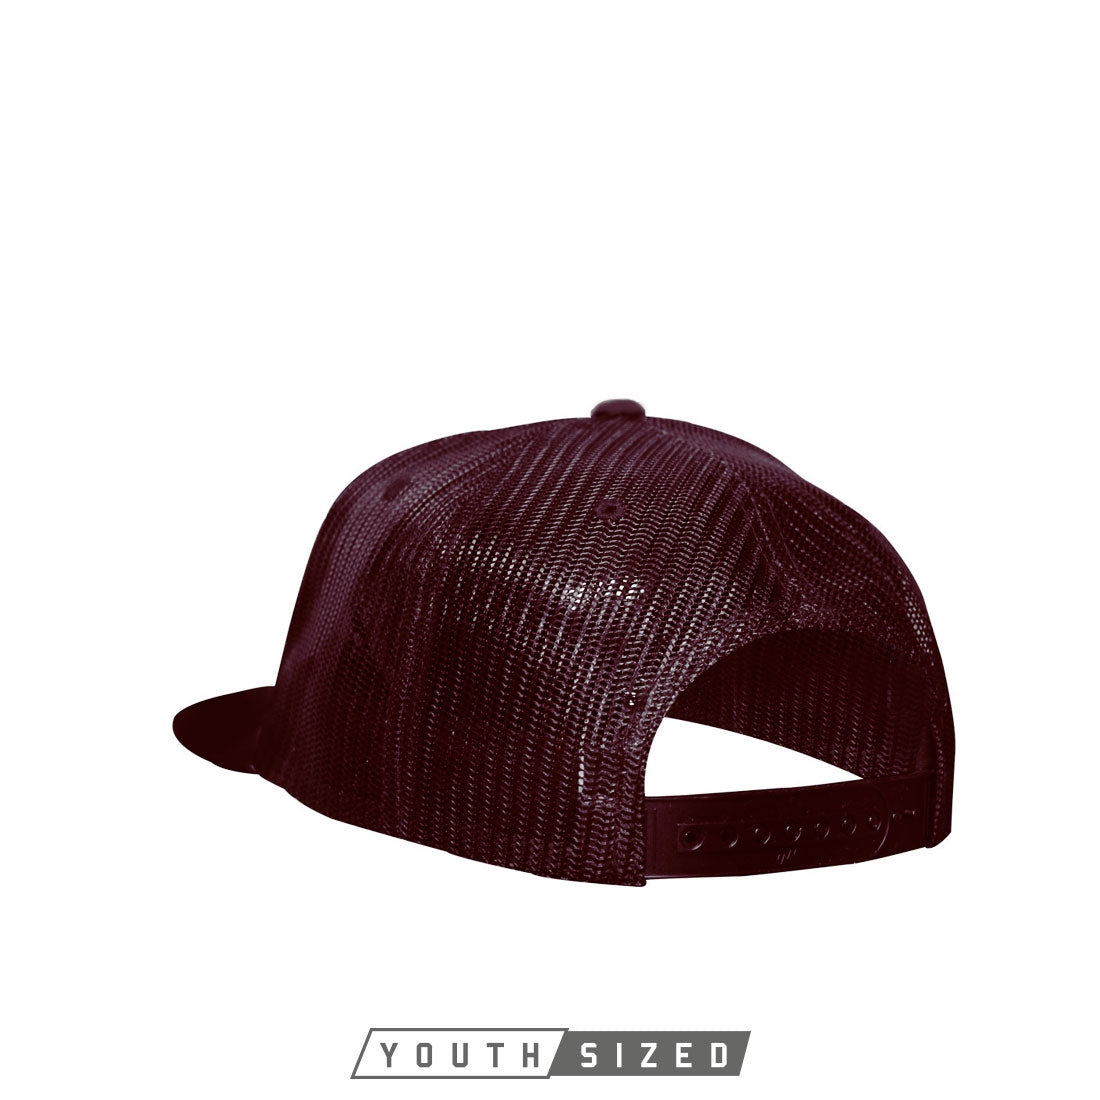 Bind Youth Curved Bill Trucker in Maroon - Back Snap View